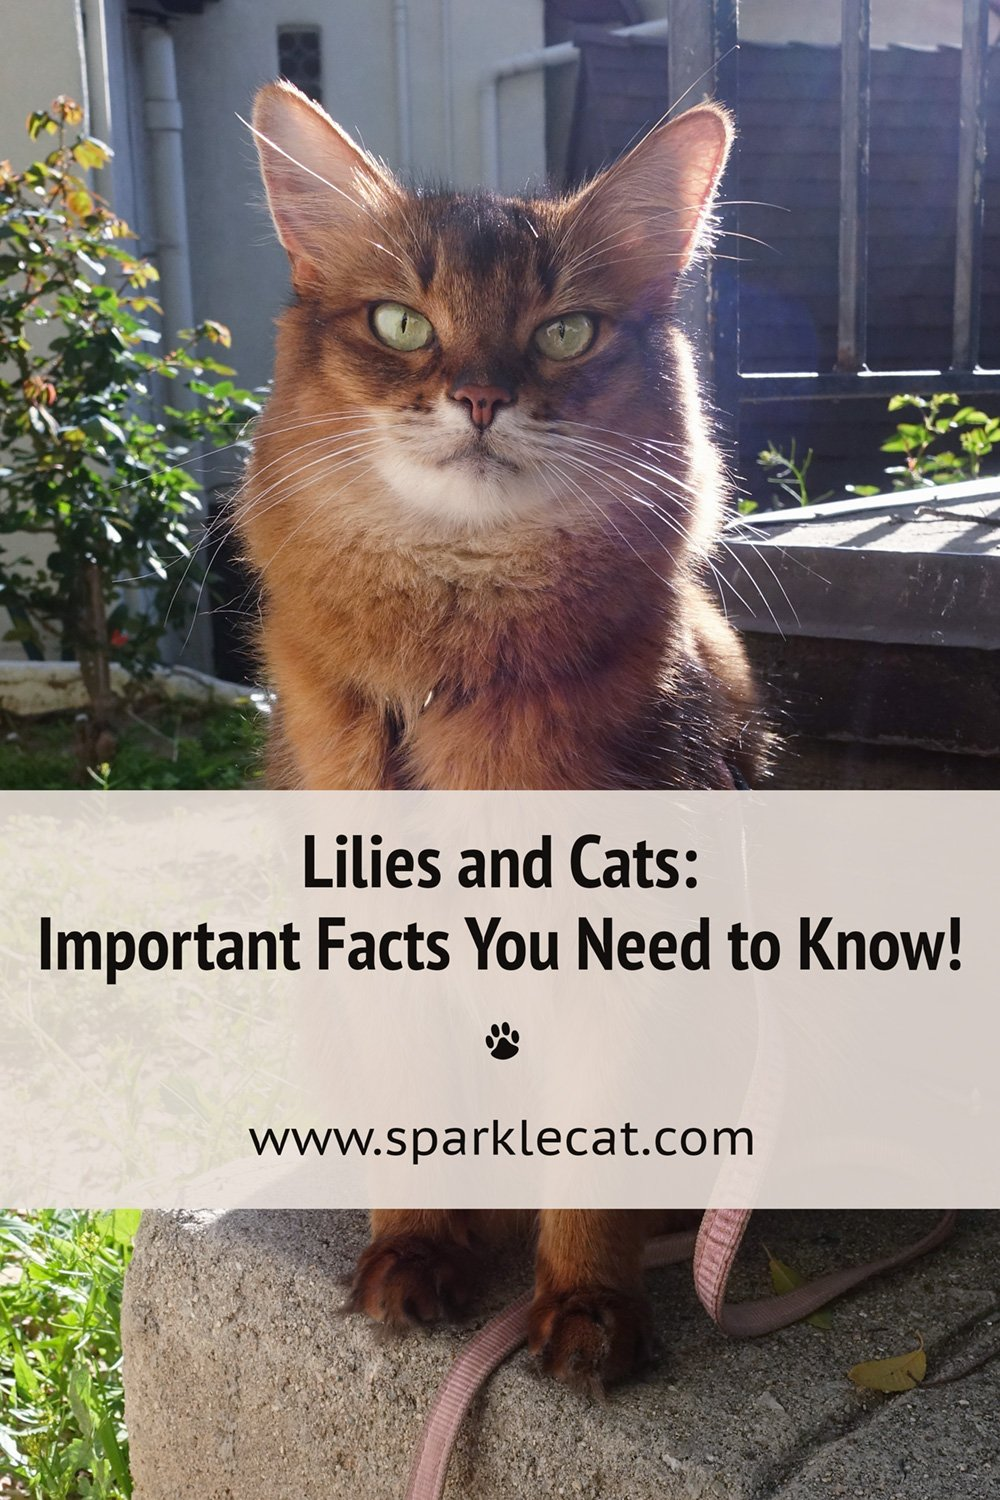 What You Need to Know About Cats and Lilies